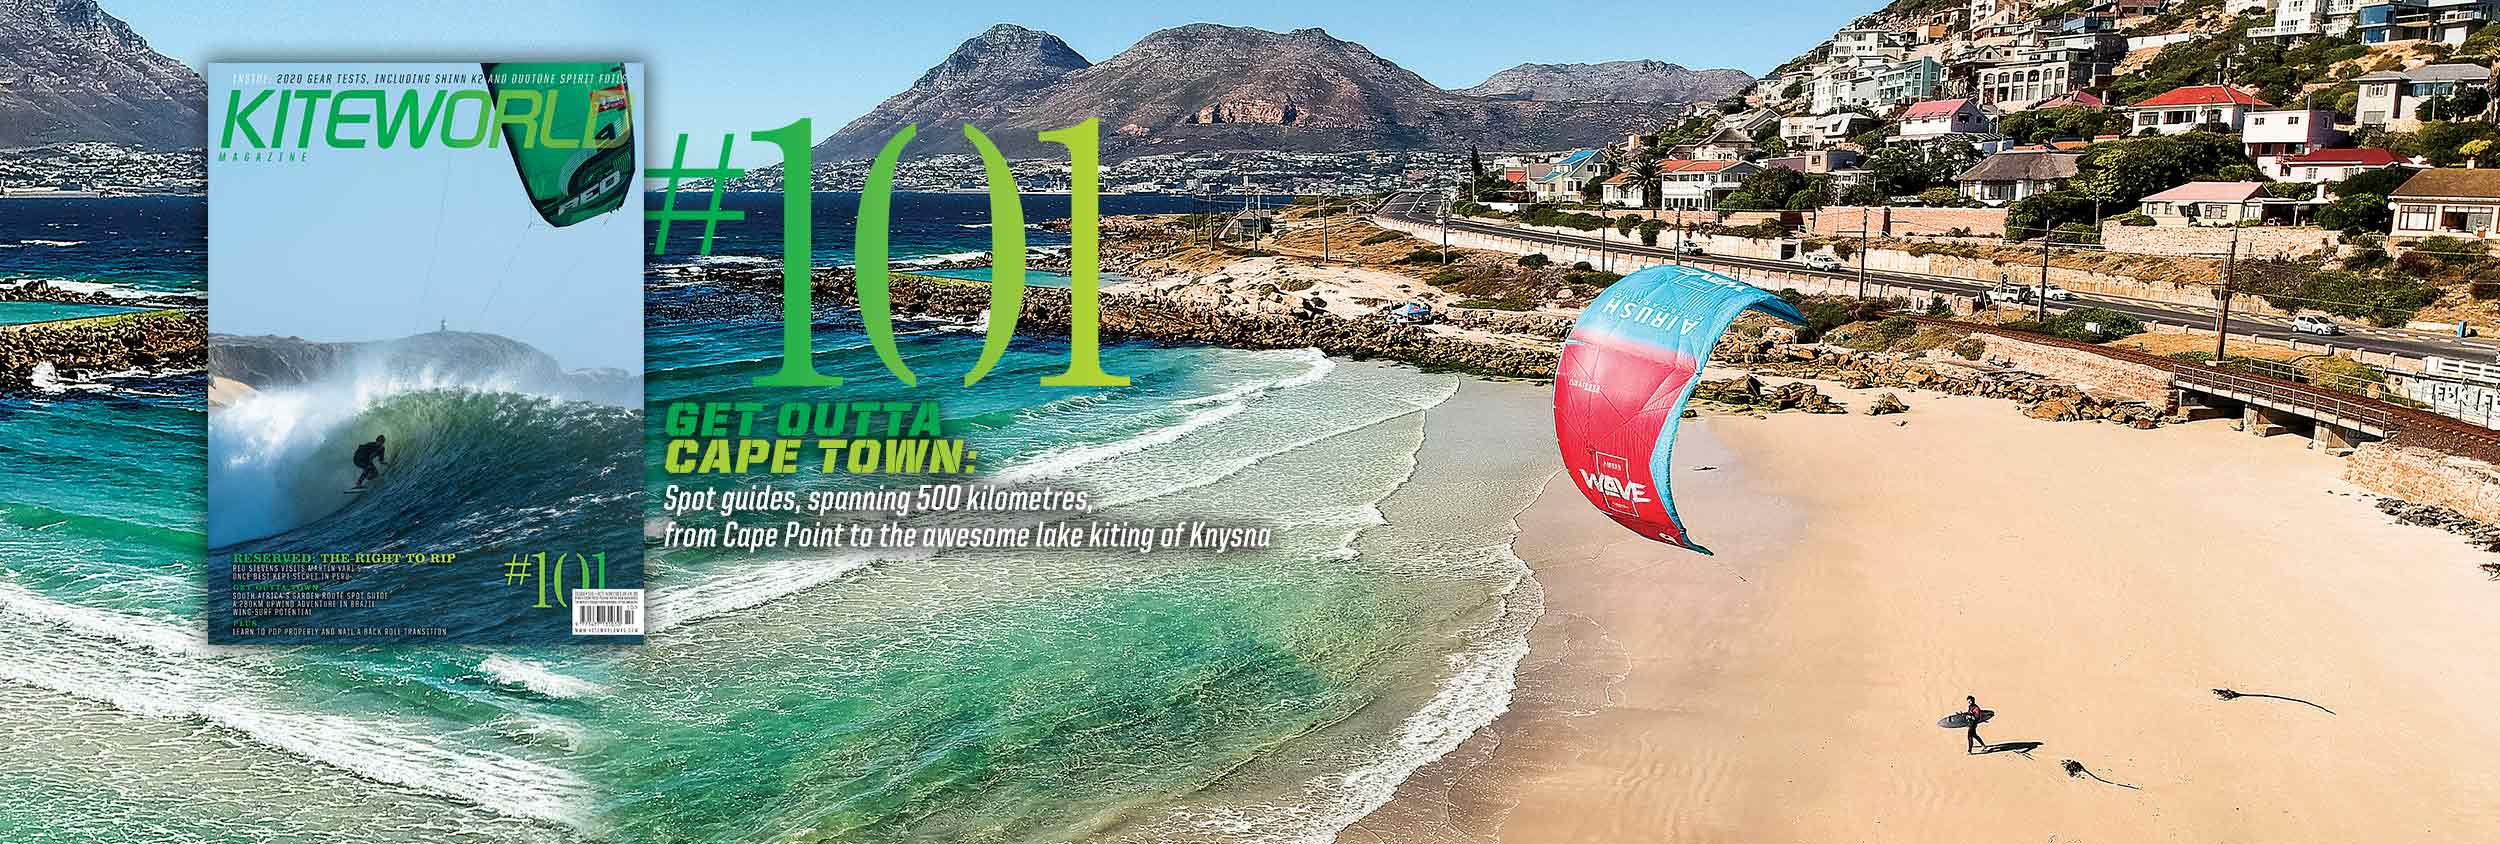 Kiteworld kitesurfing magazine new issue 101